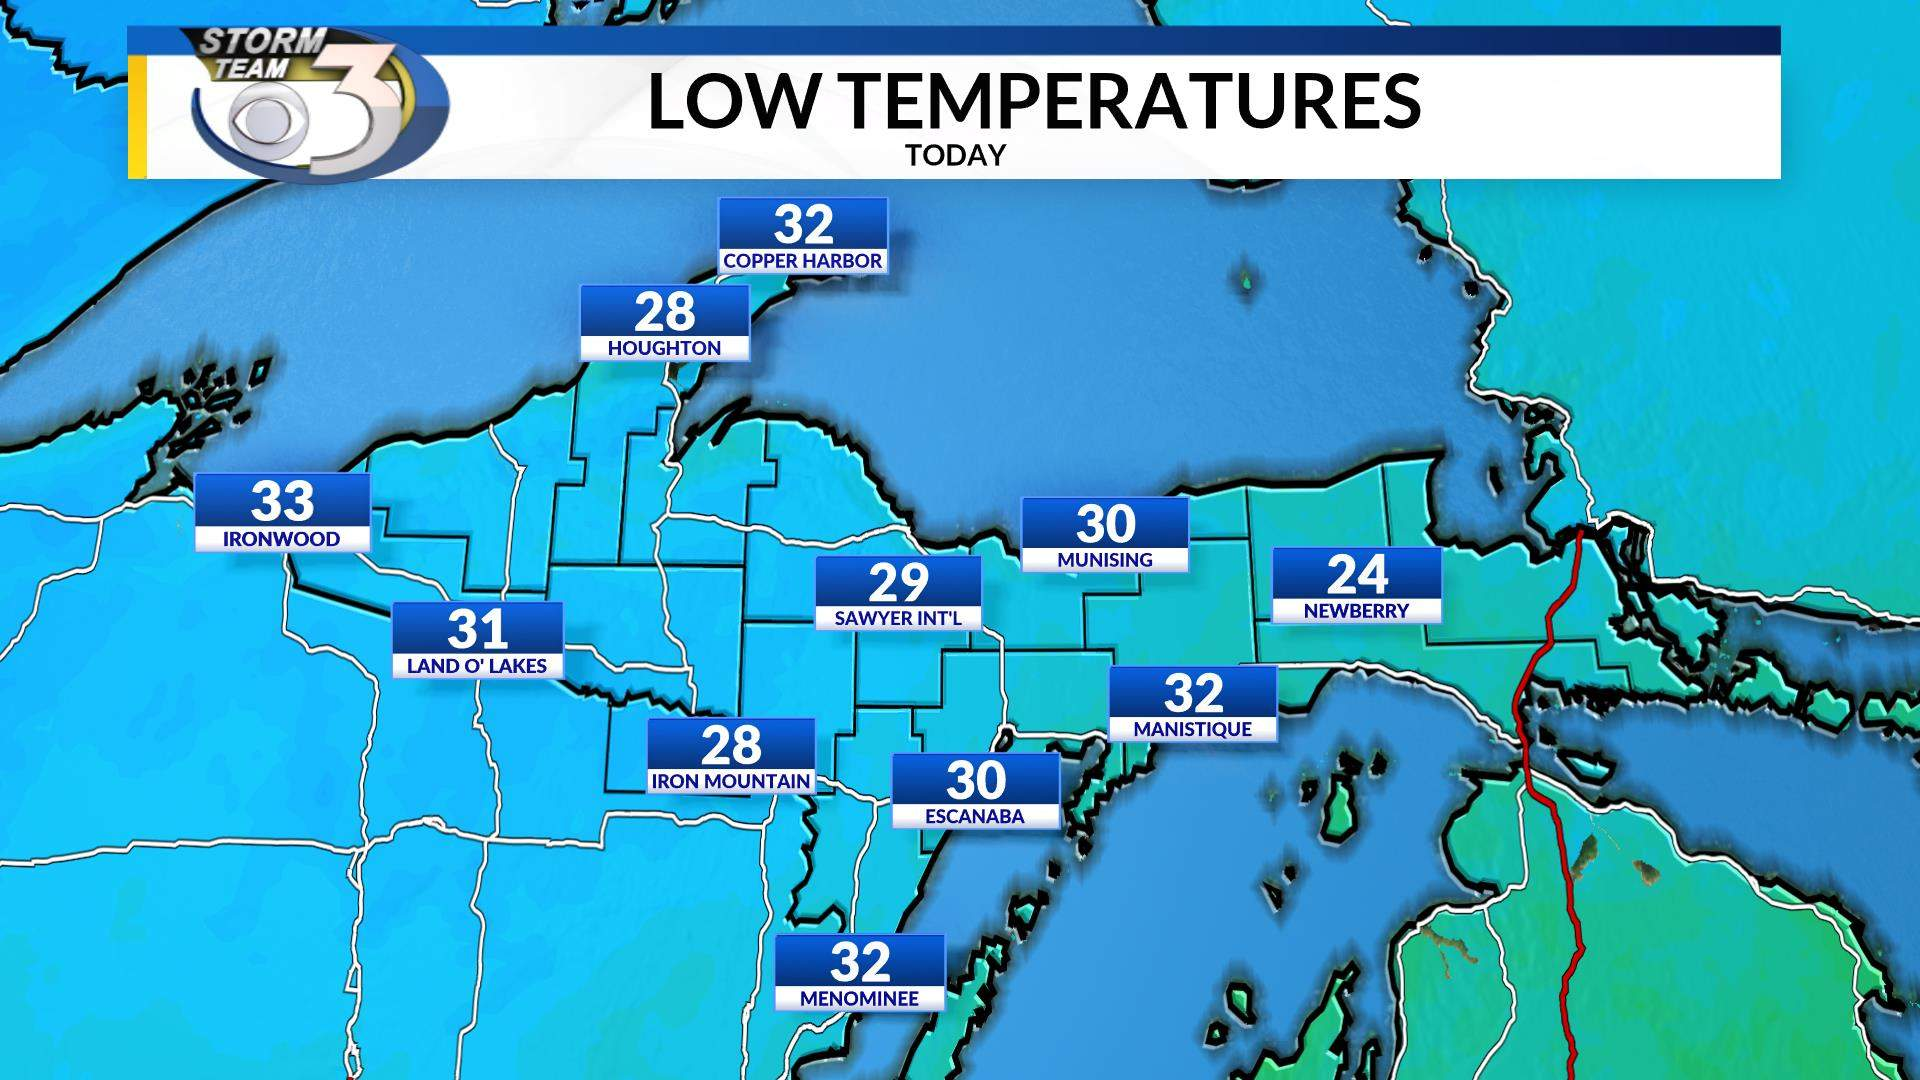 Low Temperatures